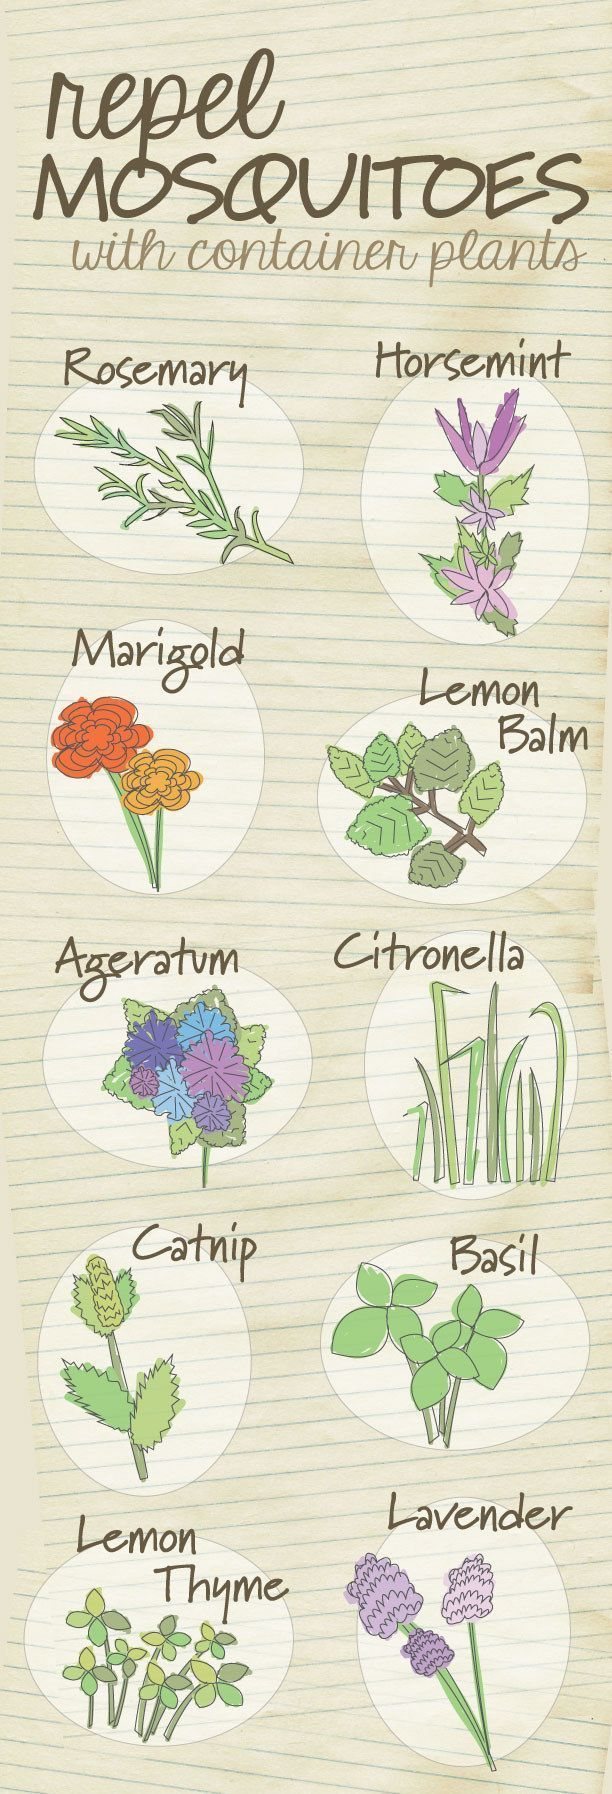 Whether you've got two green thumbs or you're an avowed plant-murderer, you need these tips.